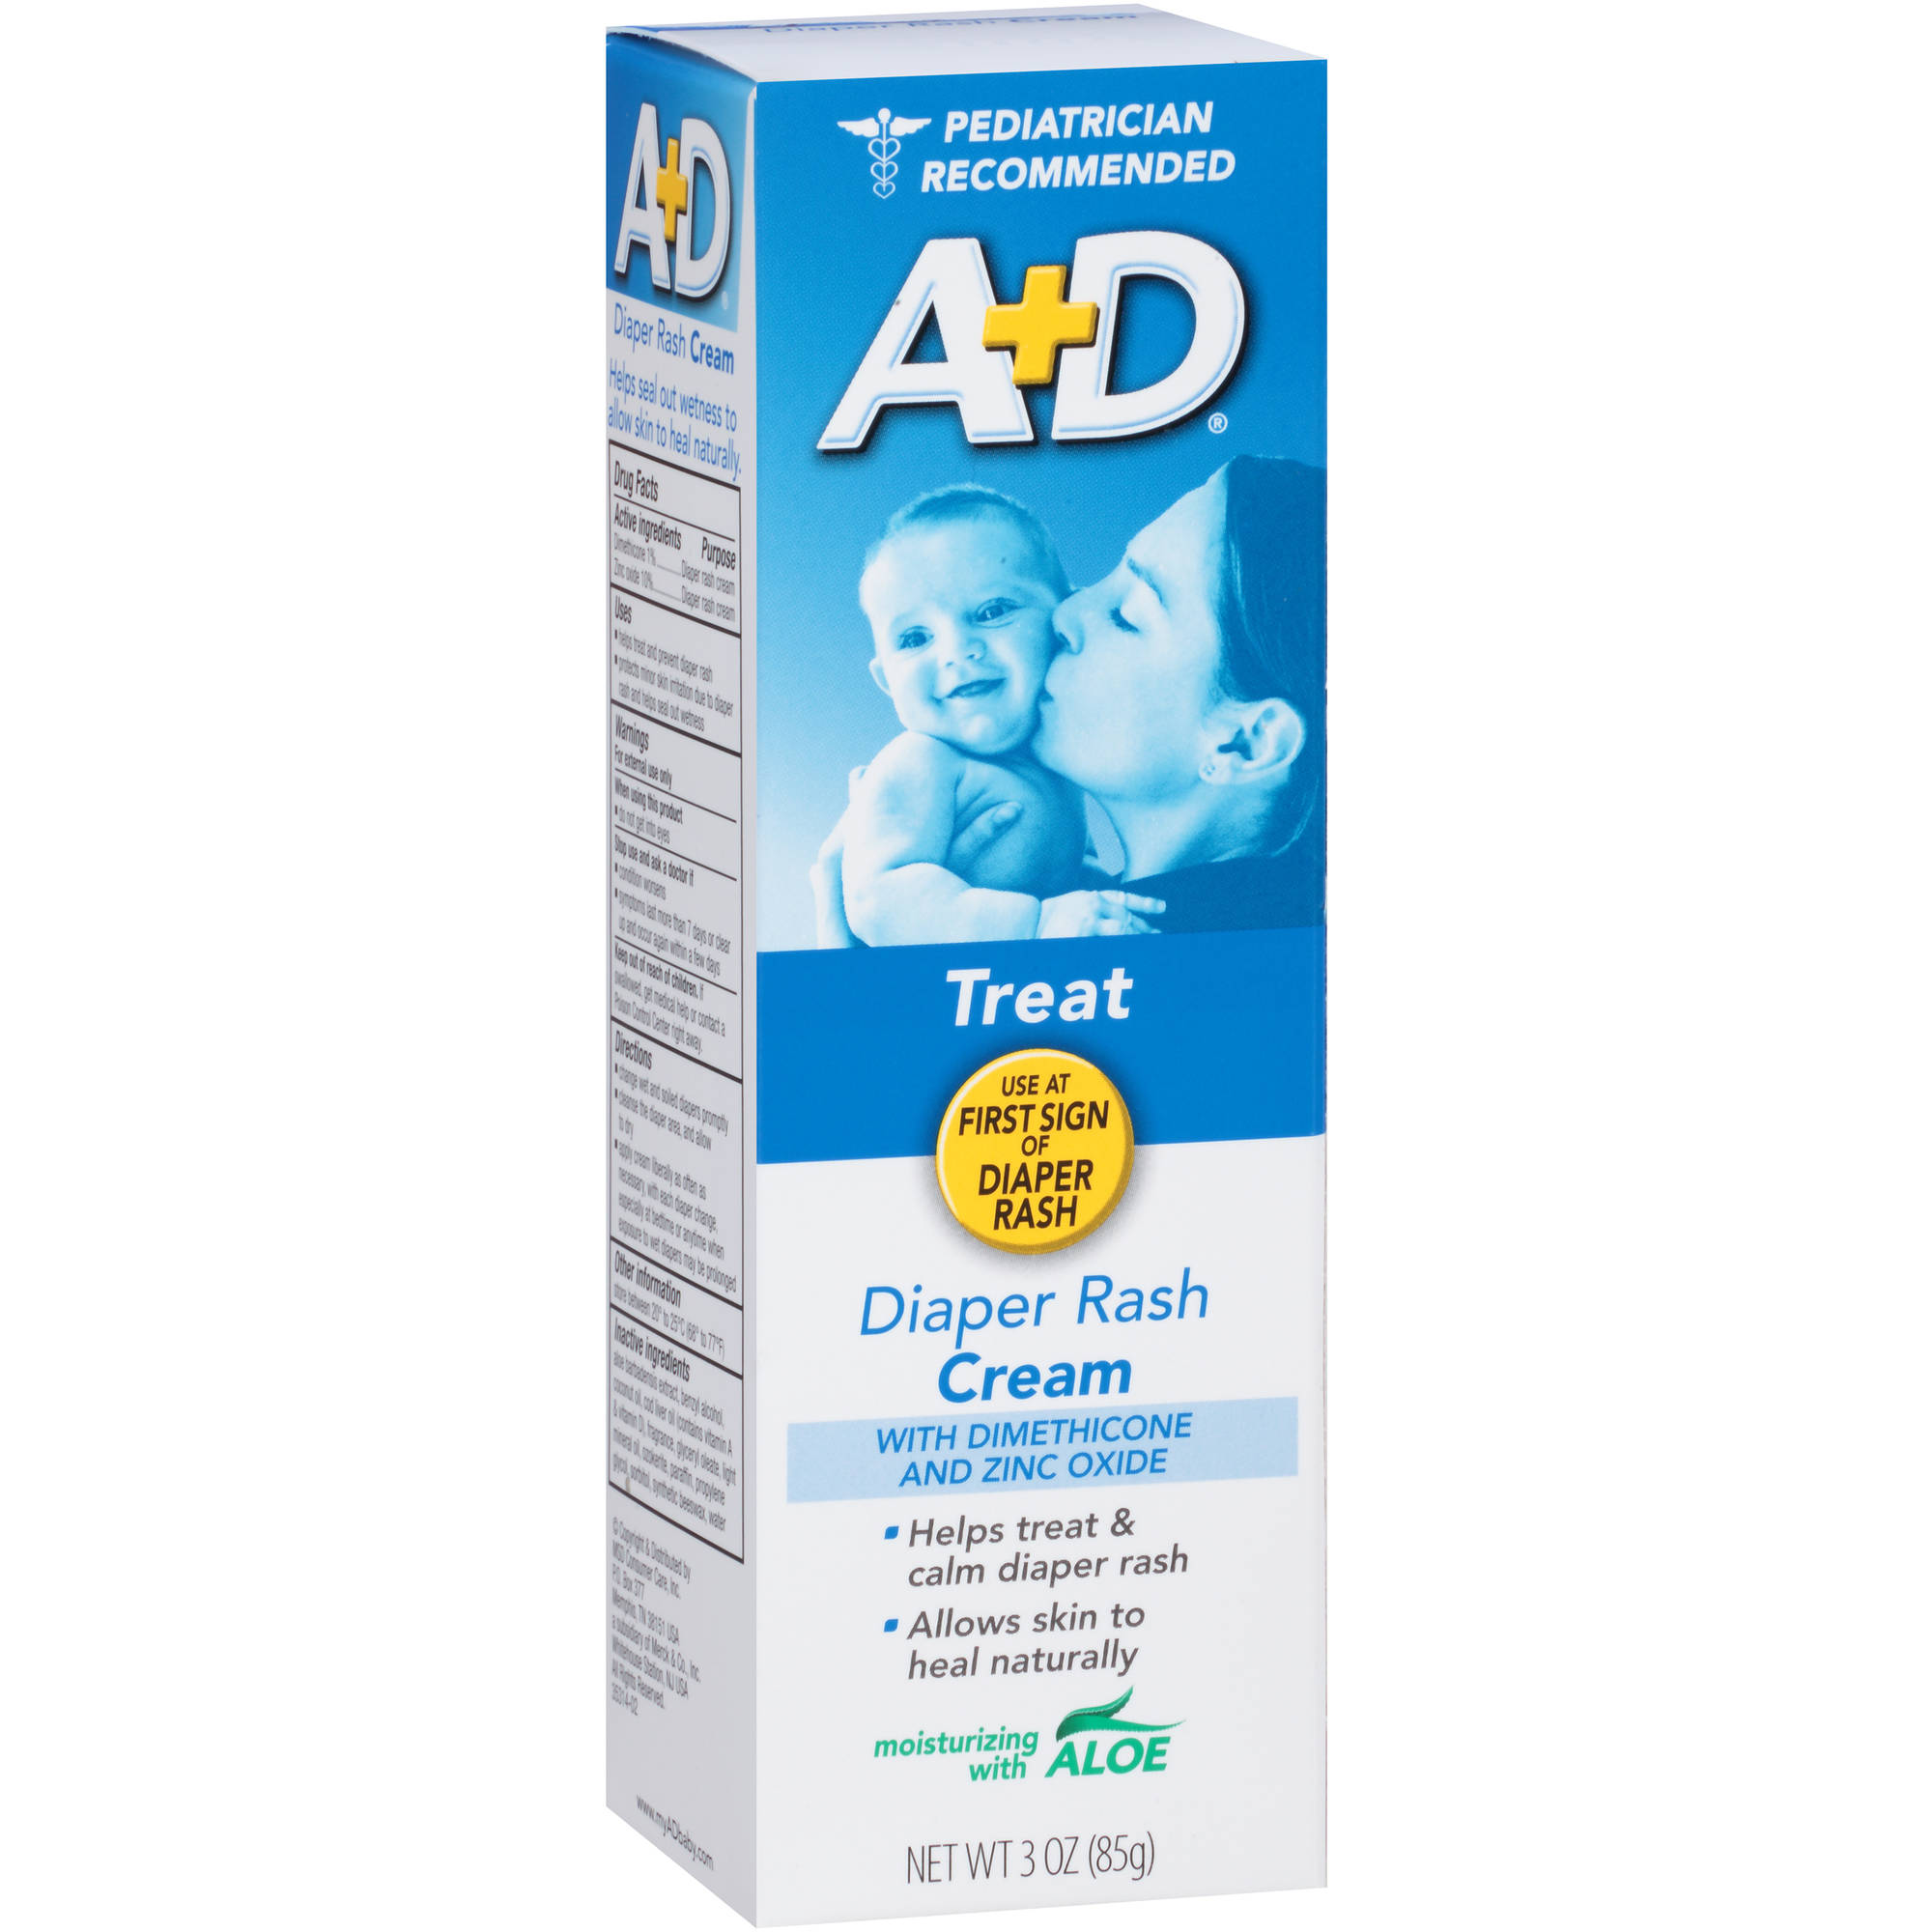 A+D Diaper Rash Cream, 3 oz